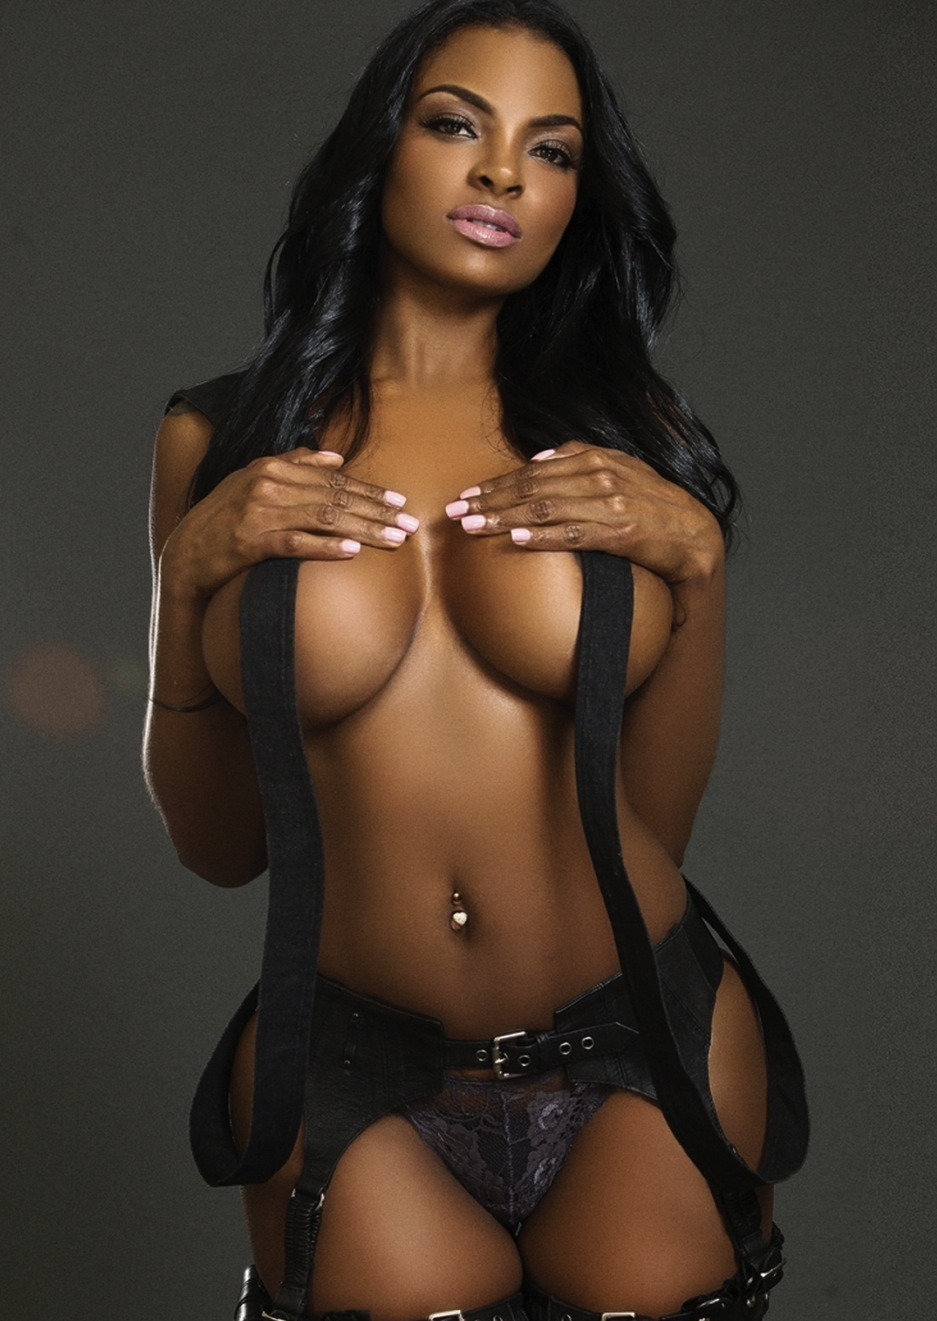 from Eliseo perfect body ebony women xxx